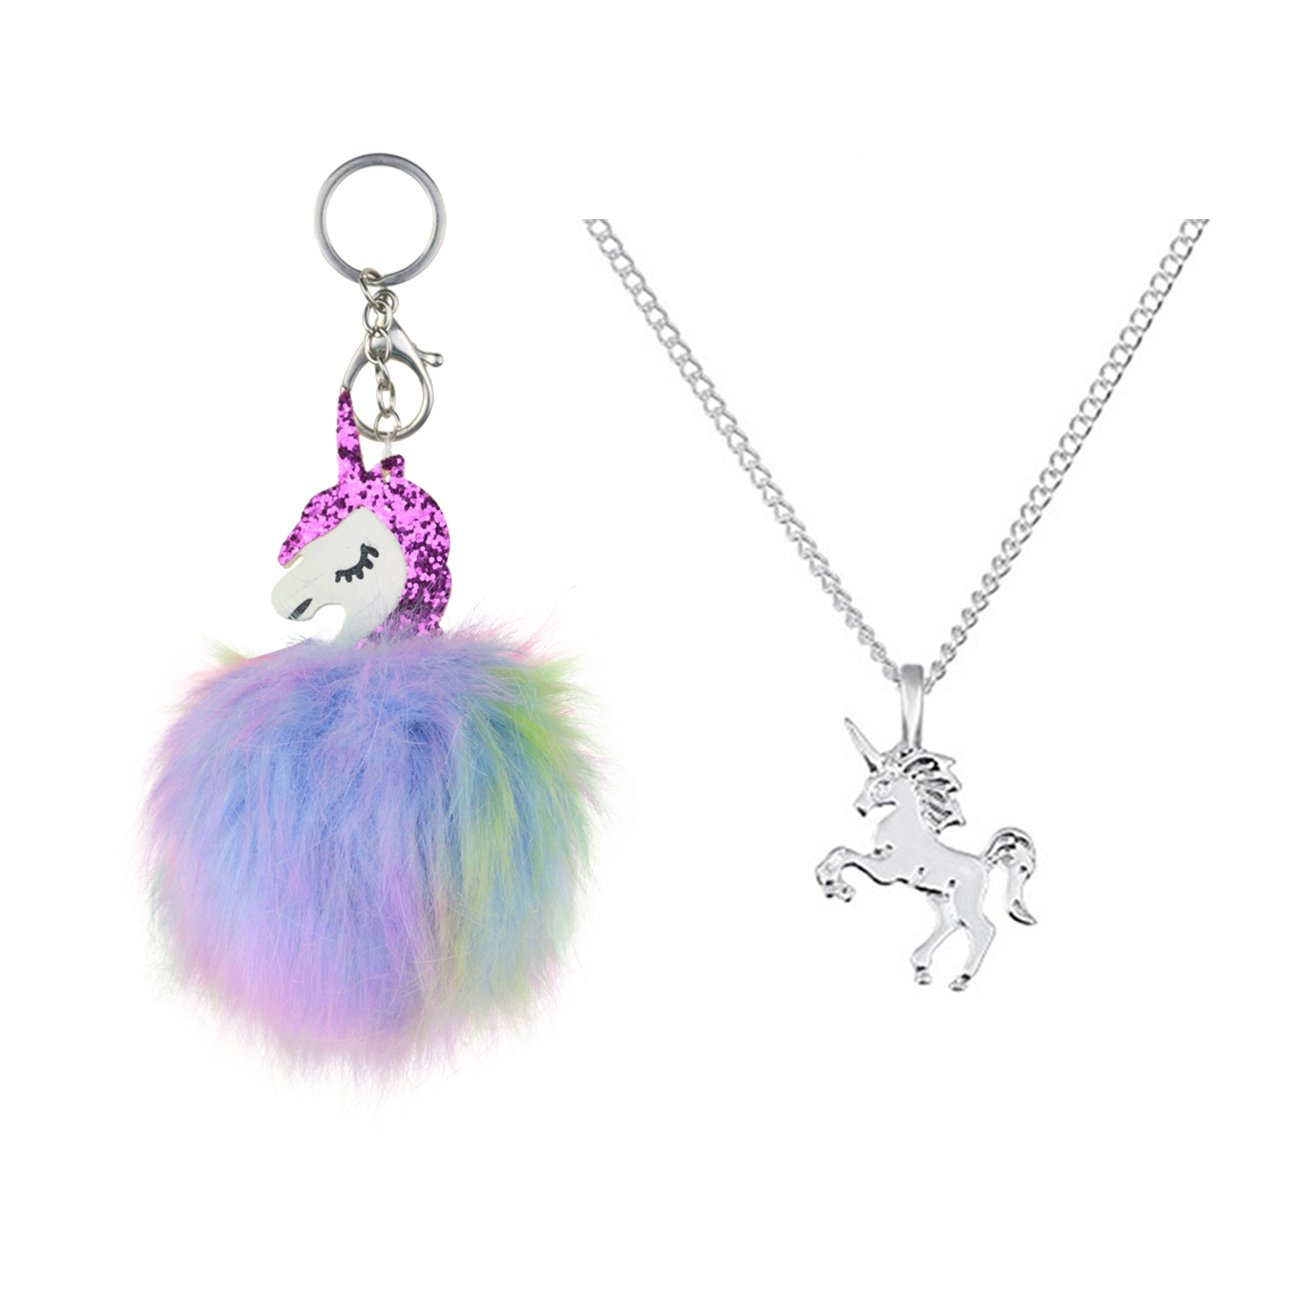 DRESHOW Unicorn Drawstring Backpack/Make up Bag/Necklace Chain/Fluffy Key Chain Ring/Bracelet Gift Sets Girls Pack 2-8 CST0005-2A